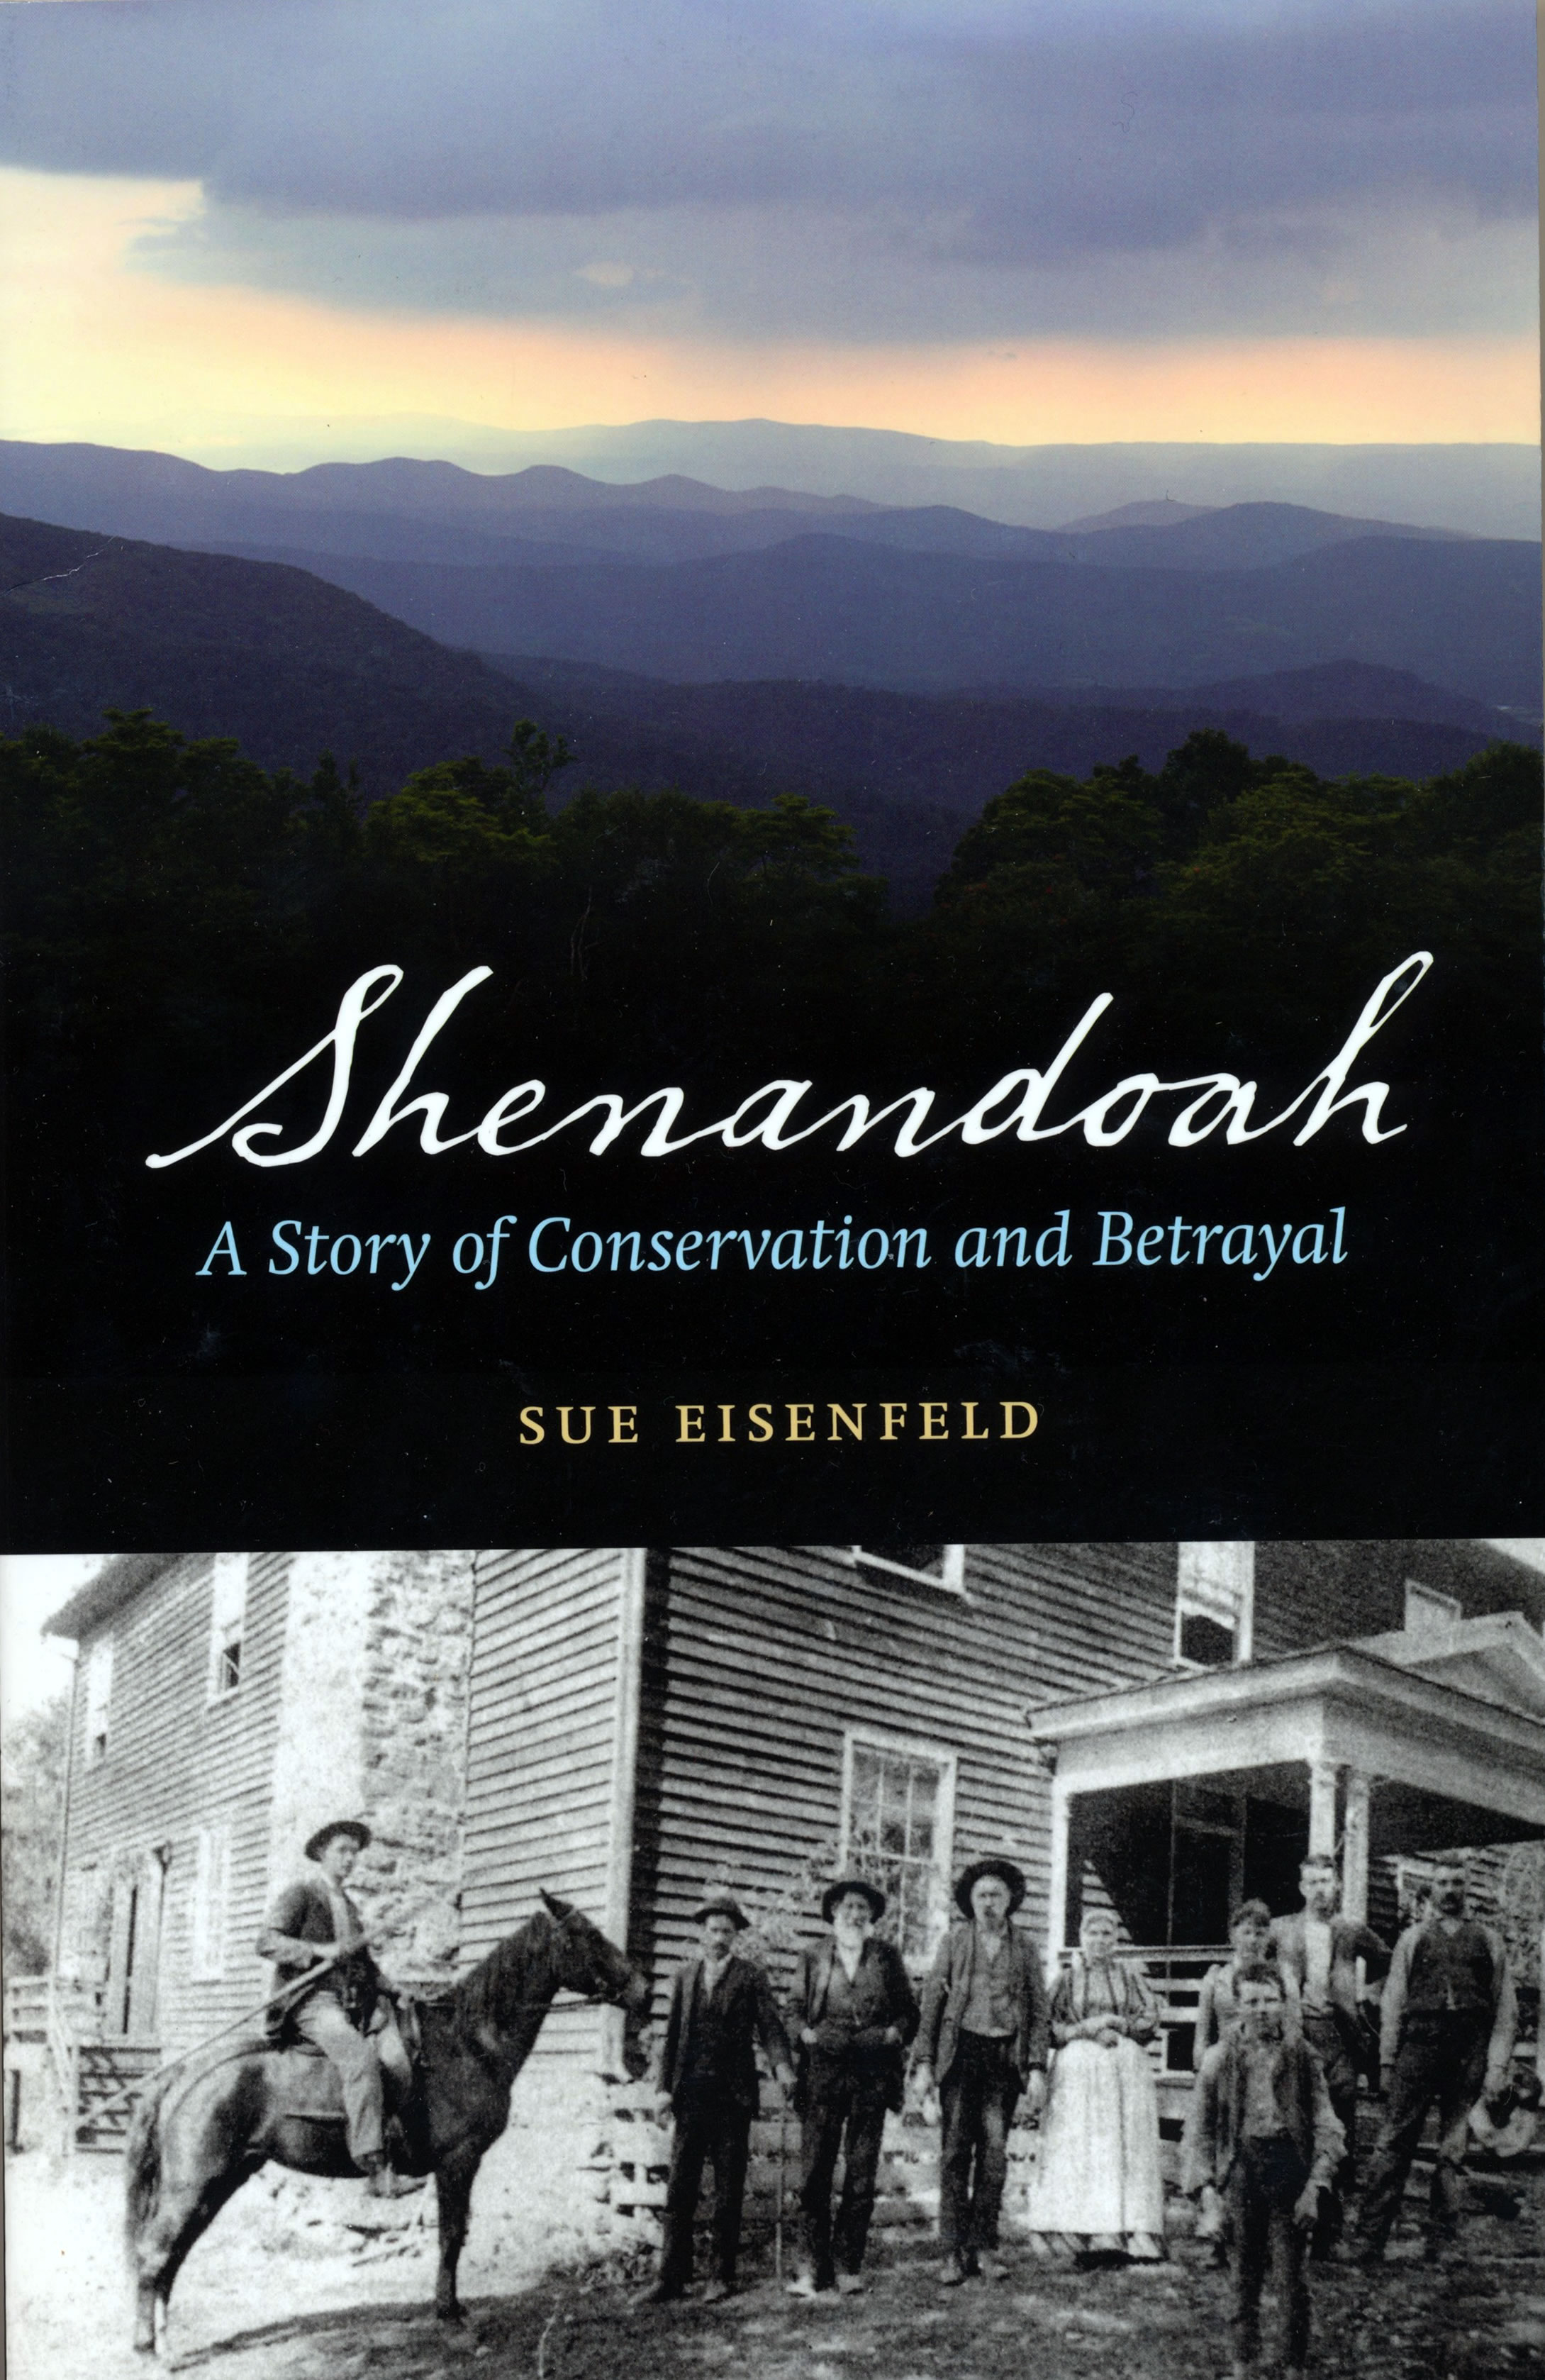 Shenandoah by Sue Eisenfeld